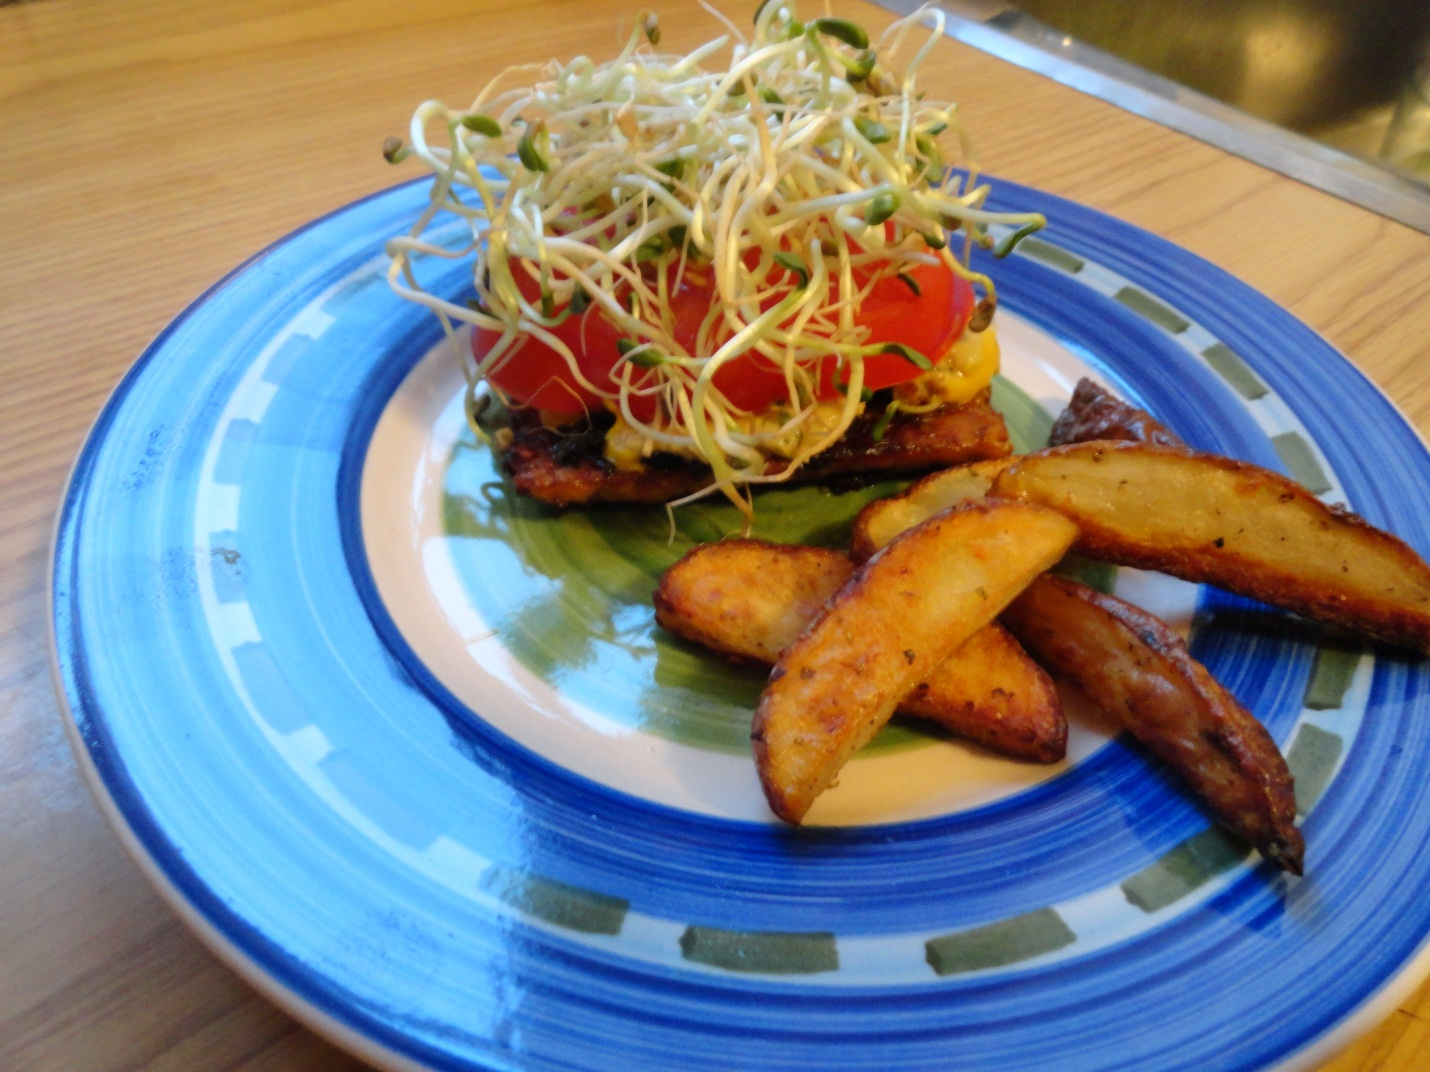 Tempeh burger with mustard, tomato, sprouts and a side of fries!